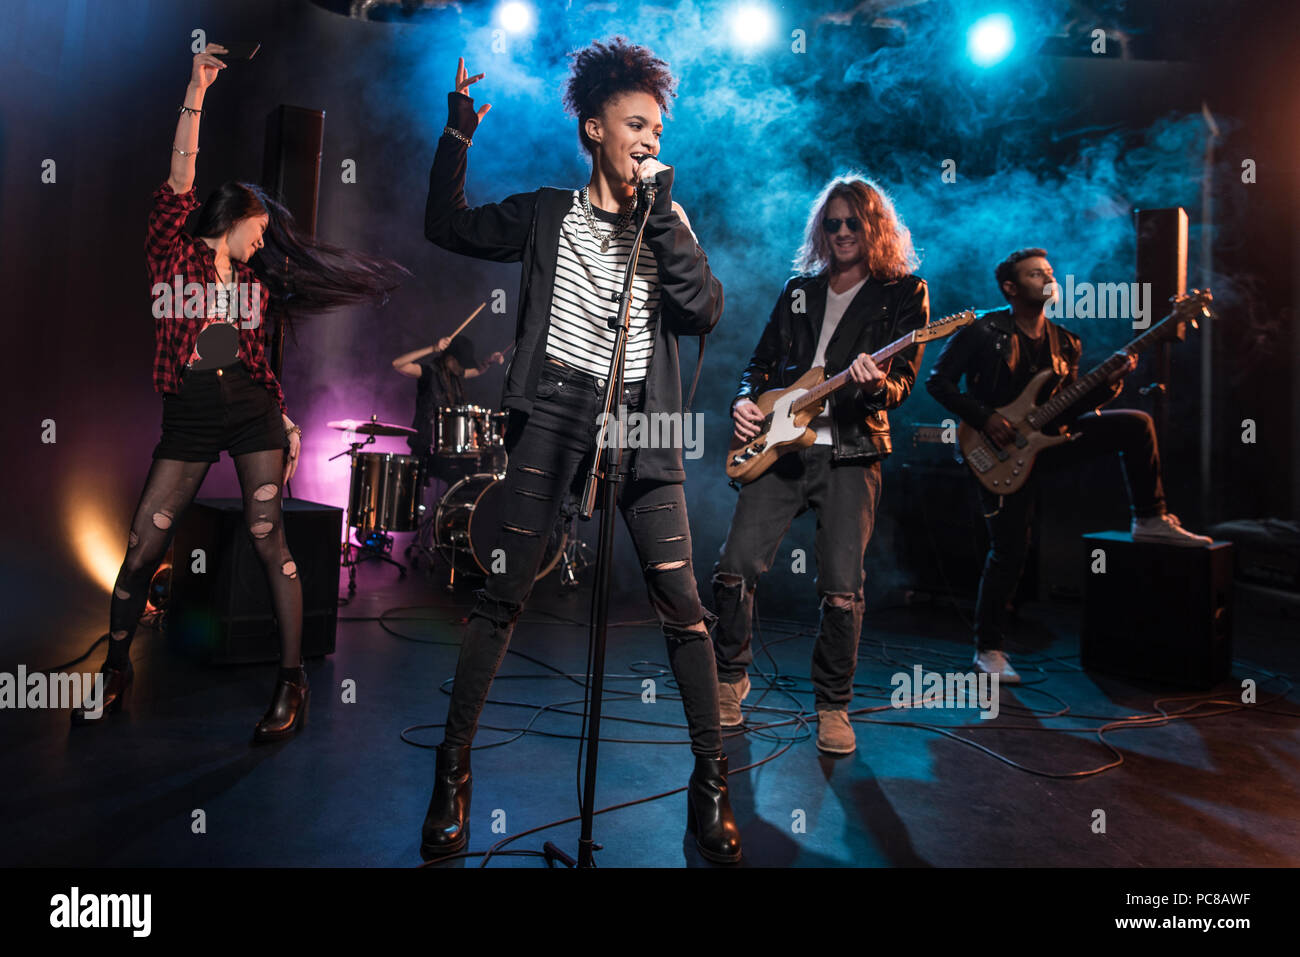 Female Singer With Microphone And Rock And Roll Band Performing Hard Rock Music On Stage Stock Photo Alamy